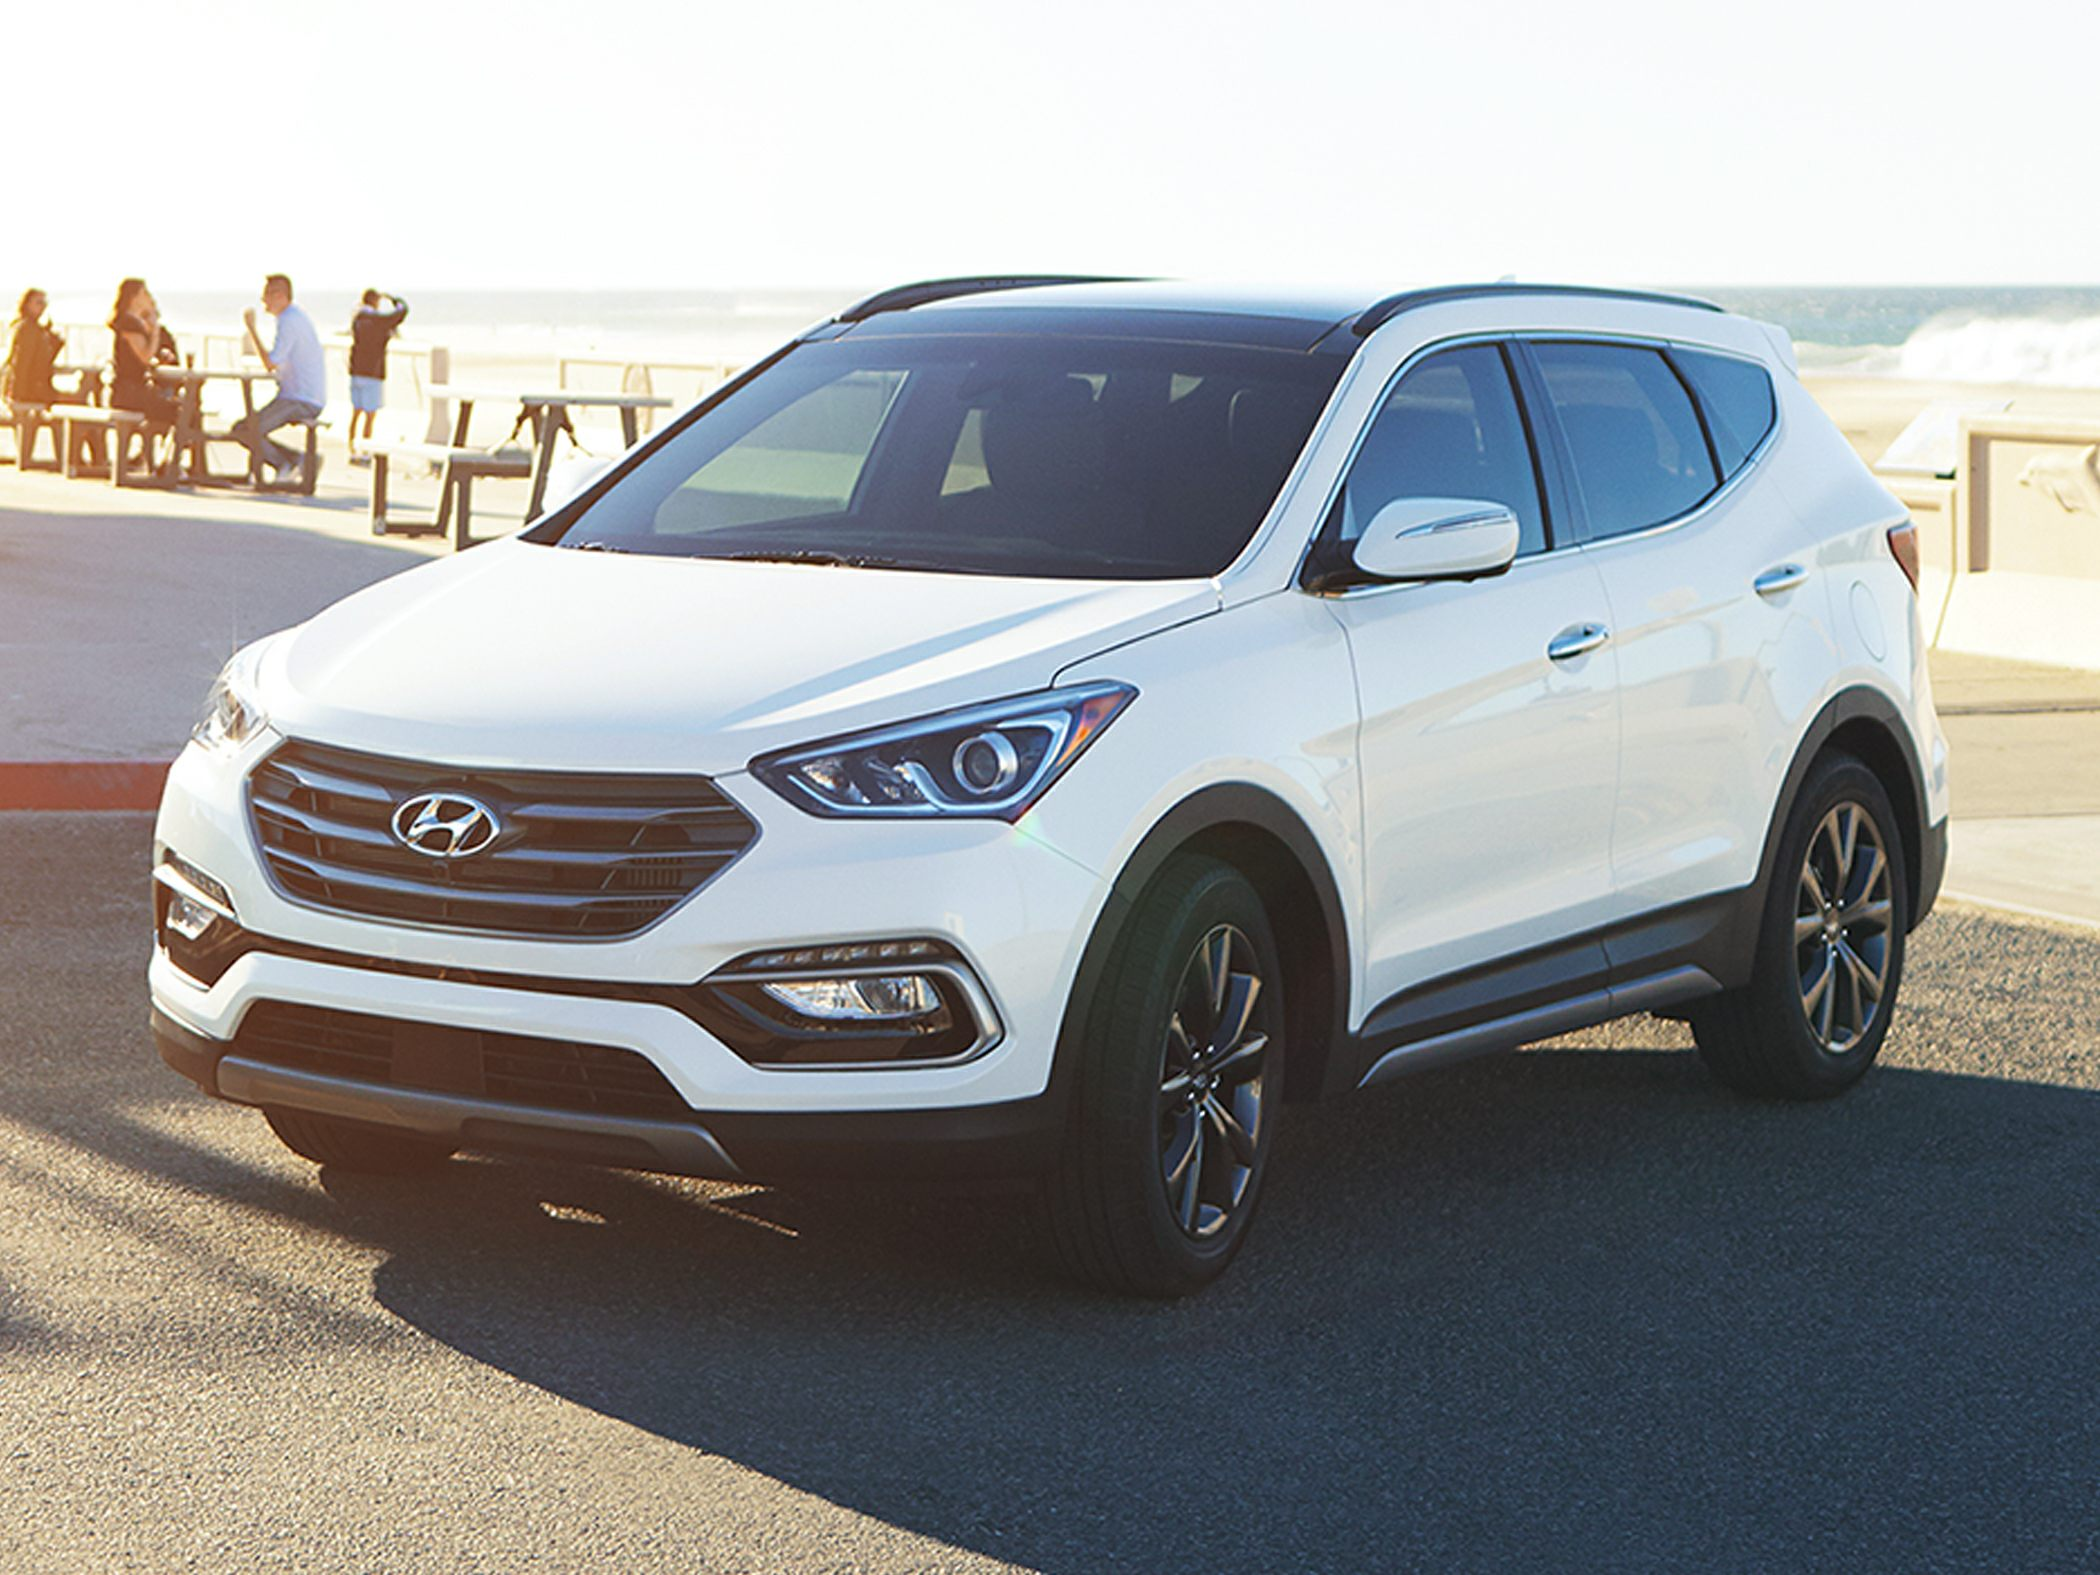 Best Hyundai Deals & Lease Offers: July 2018 - CarsDirect